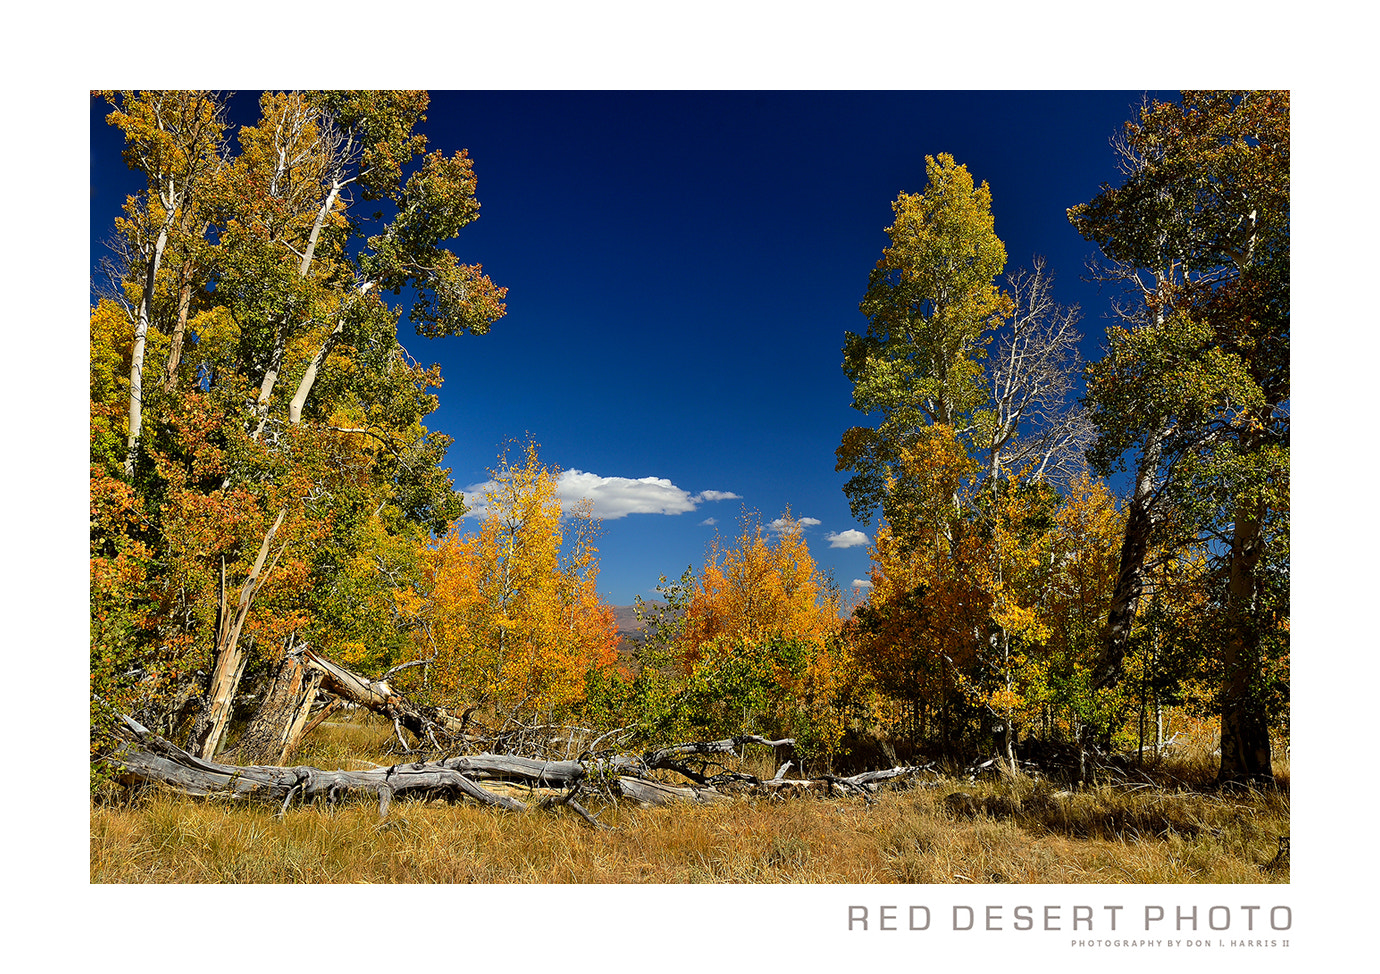 Photograph East Side Sierra Nevada  Fall 2012 by Red Desert Photo on 500px